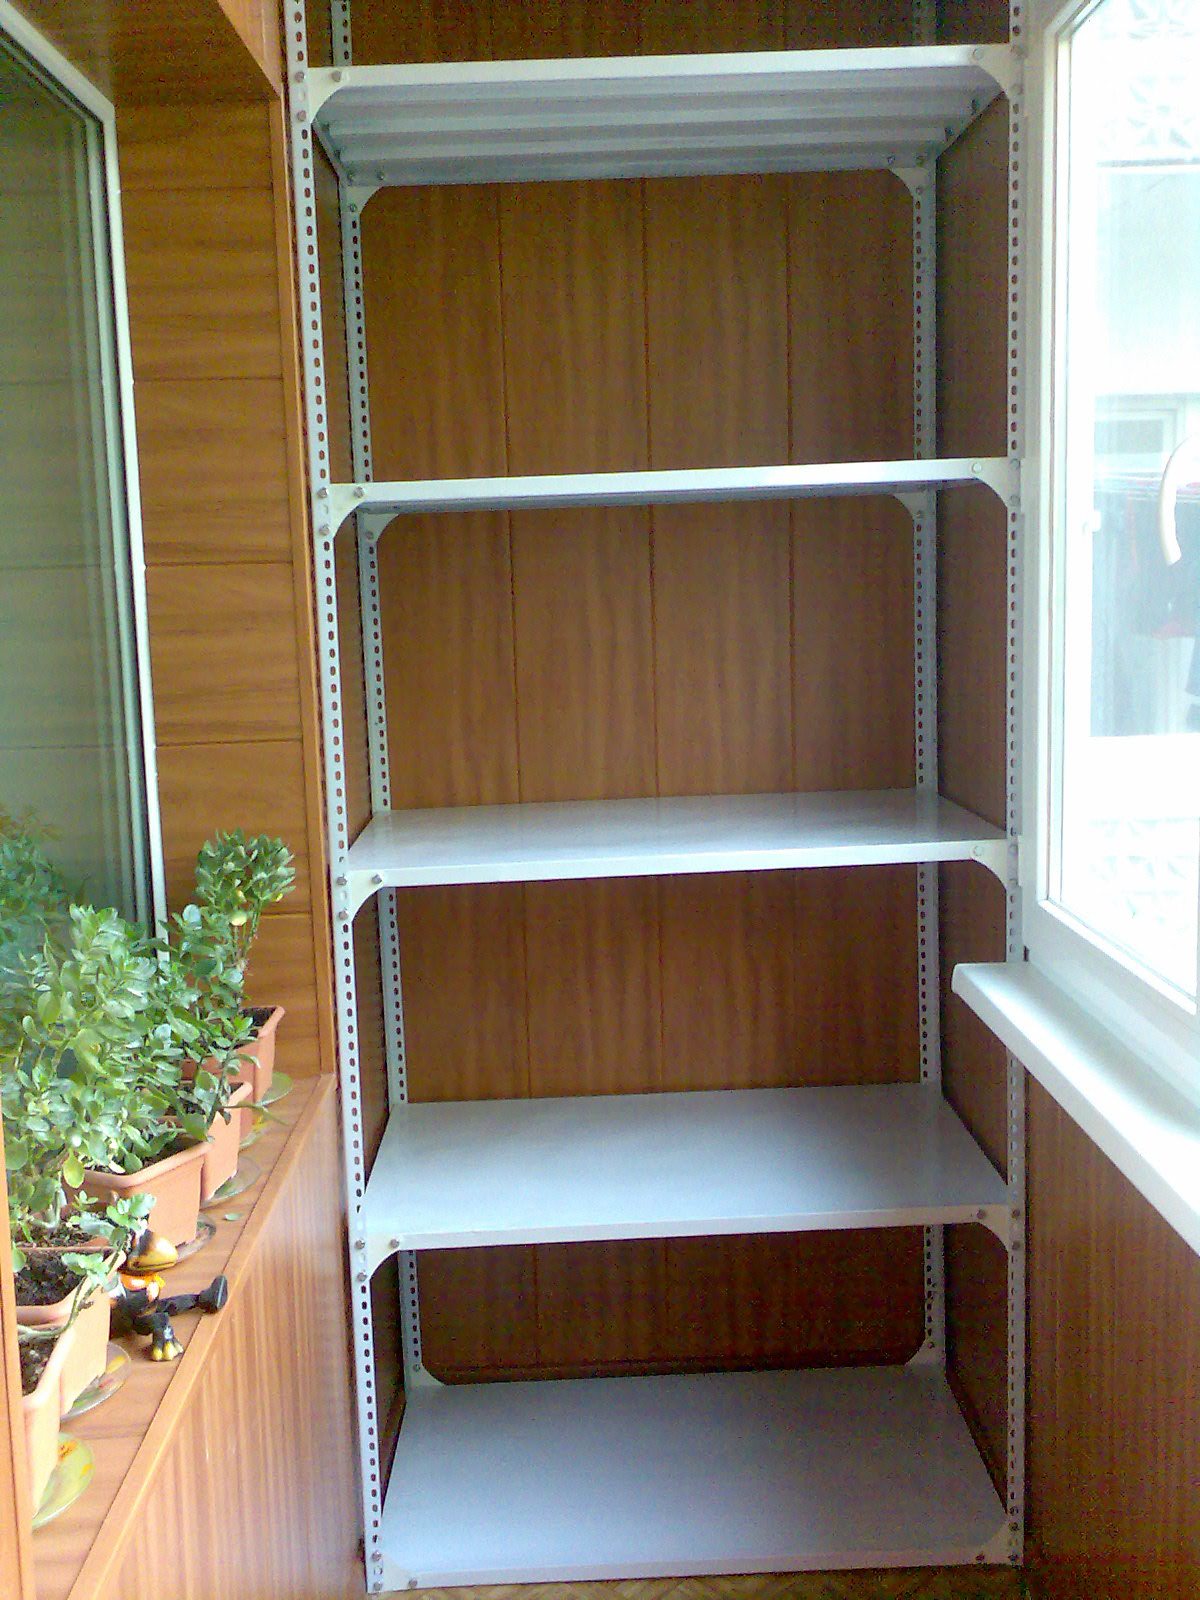 Shelving on the balcony - home decoration.